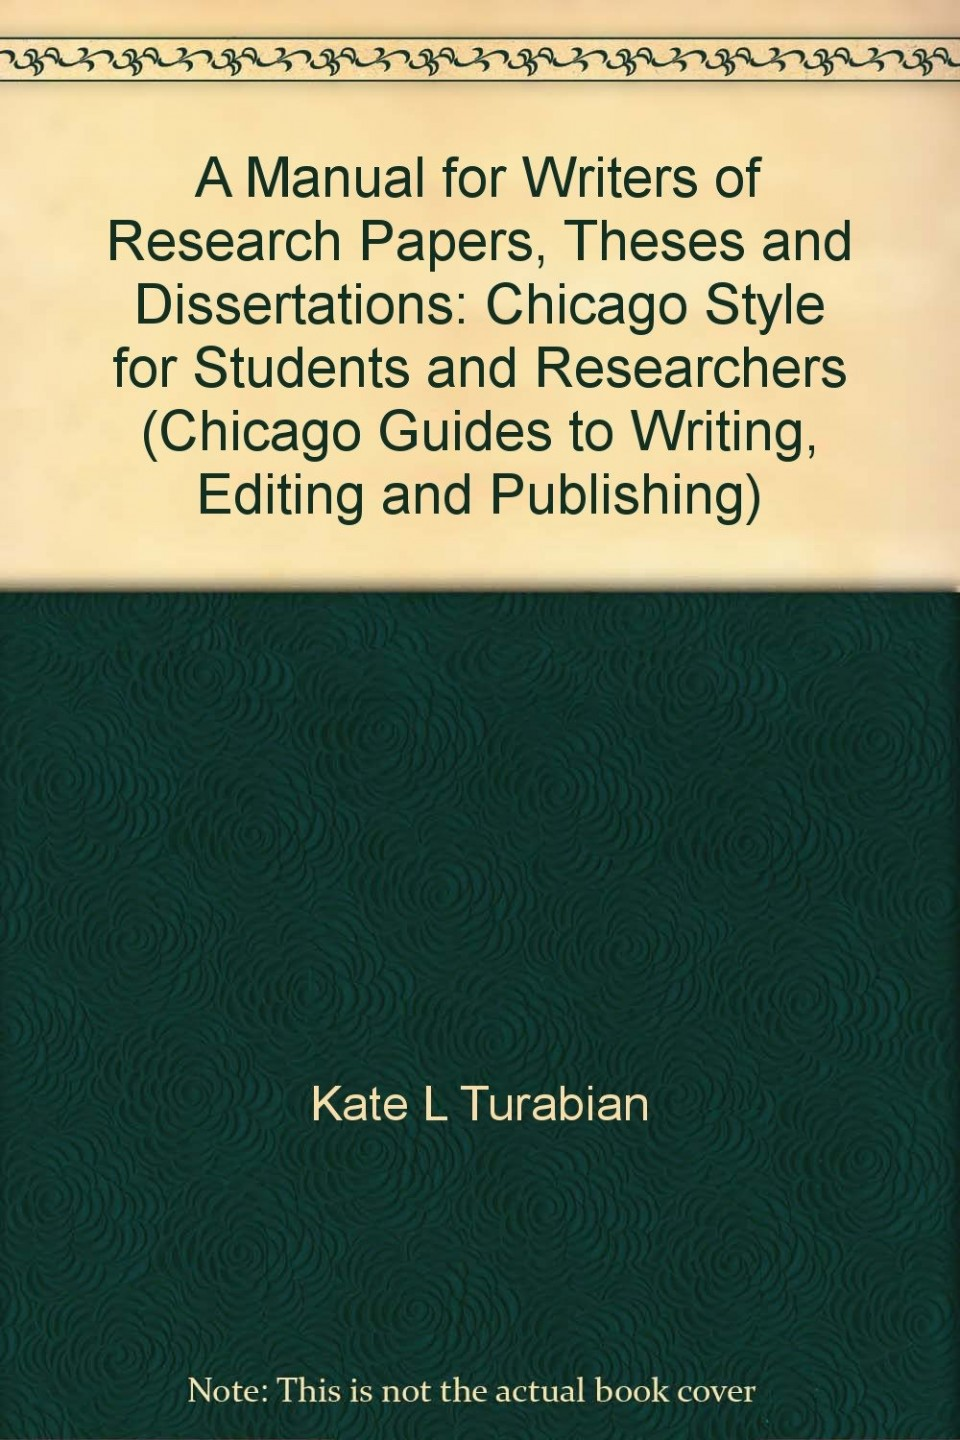 025 Research Paper Manual For Writers Of Papers Theses And Dissertations Turabian Amazing A Pdf 960